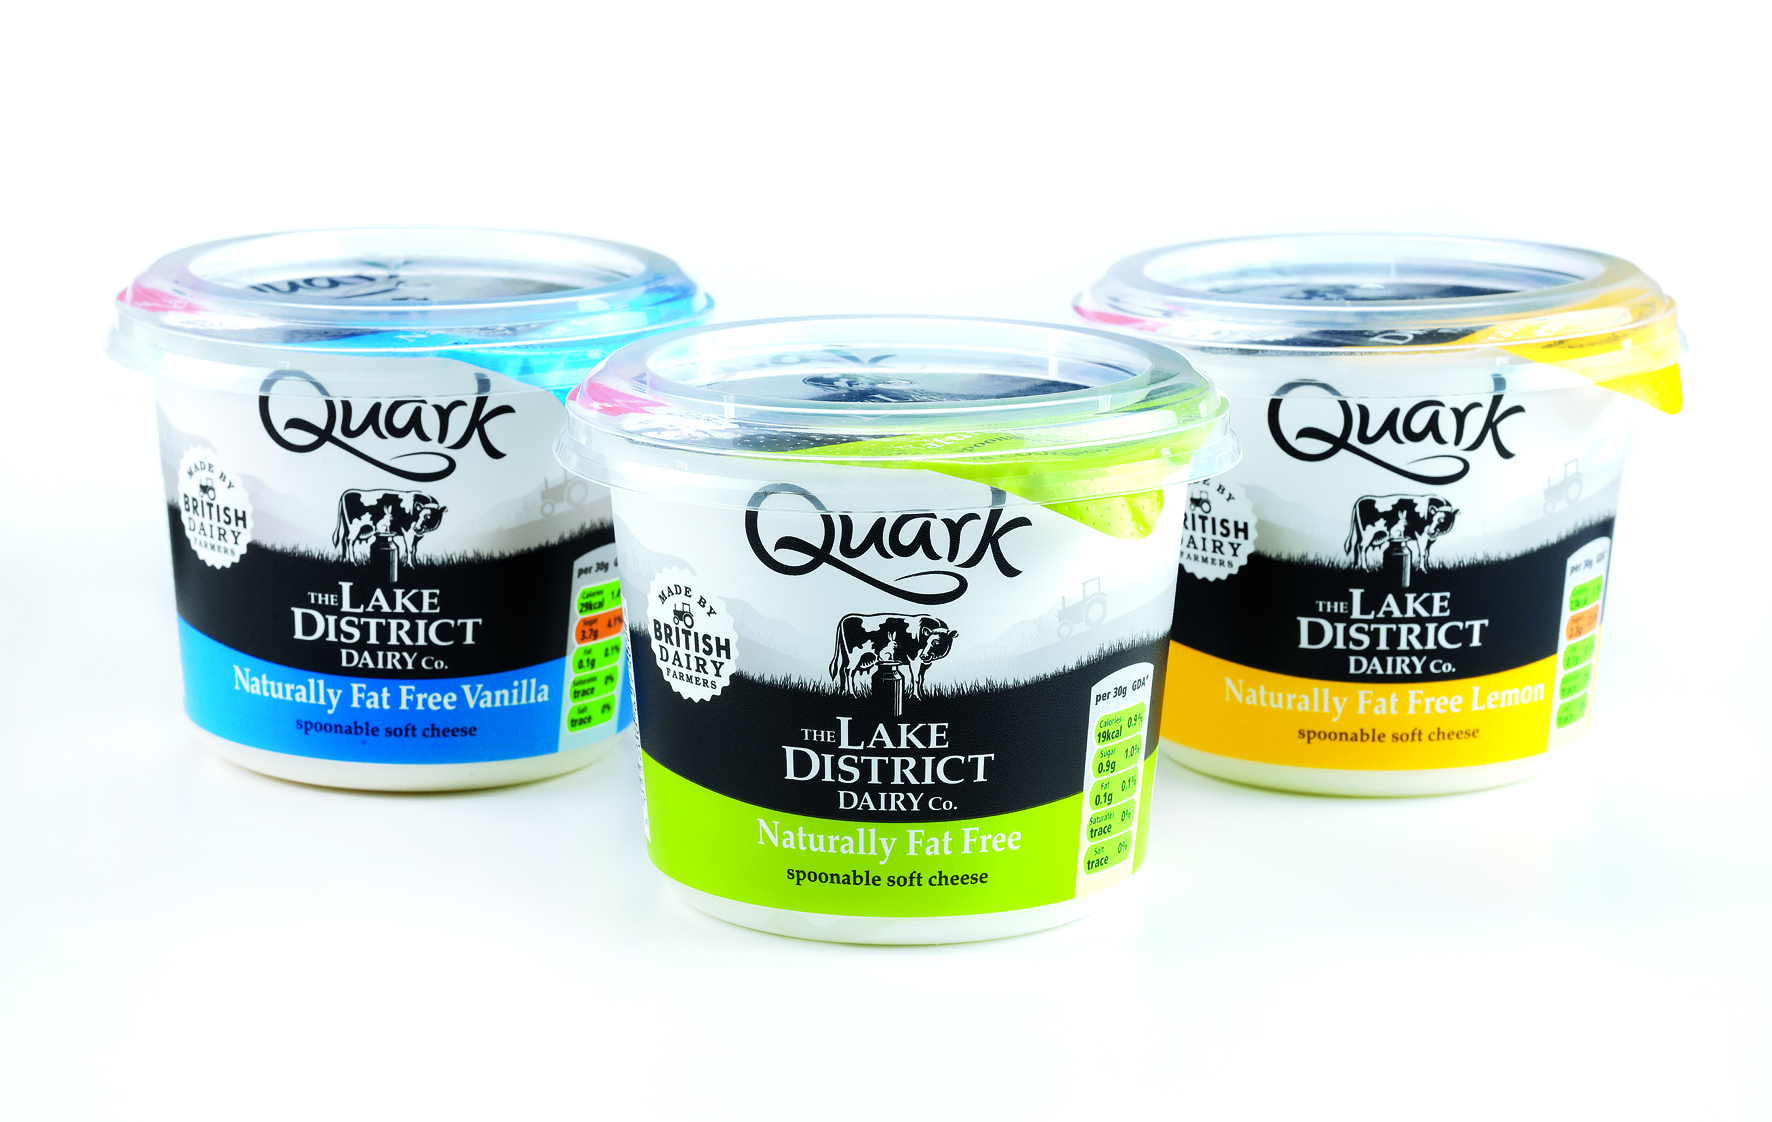 Photo: Lake District Dairy Co. Quark, designed by Parker Williams